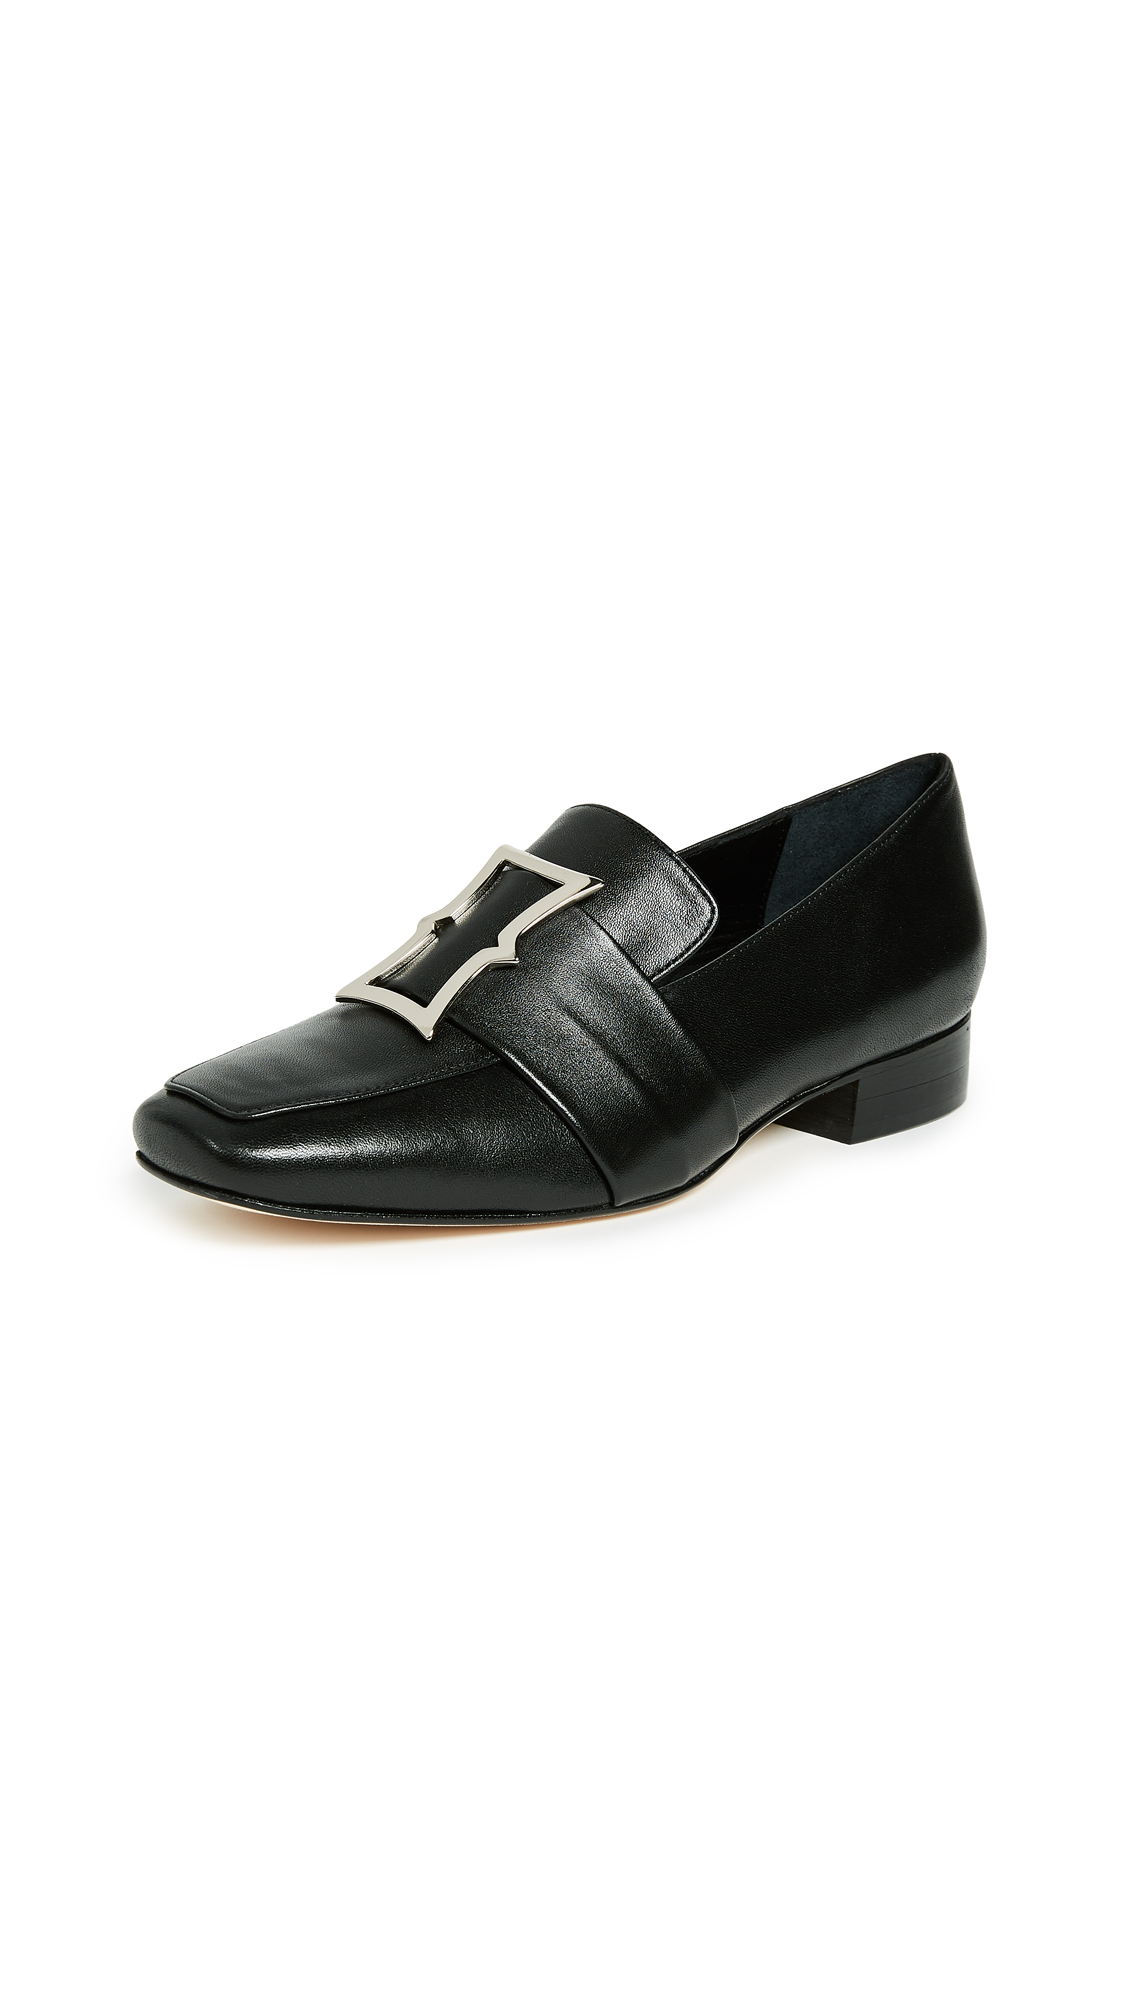 Photo of Dorateymur Harput II Loafers - buy Dorateymur shoes